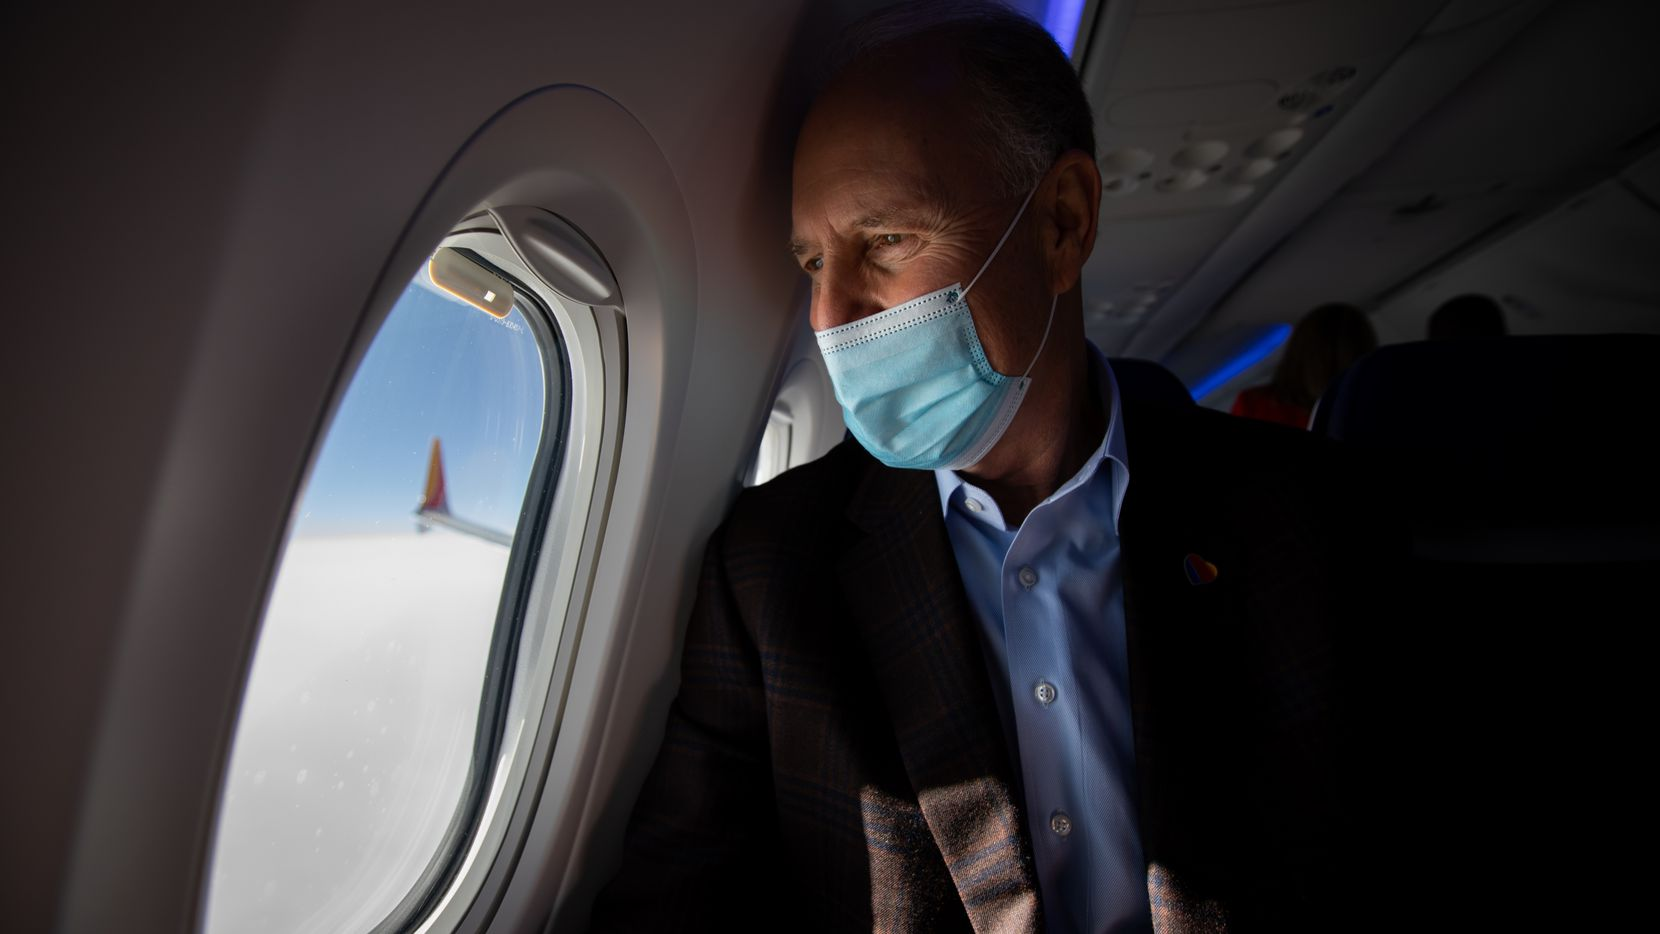 """Southwest Airlines CEO Gary Kelly, aboard a test flight of one of the company's 737 Max aircraft in December 2020, says of the pandemic: """"We figured out what we needed to do to fight our way through it. And we feel like we're on the other side of this."""""""